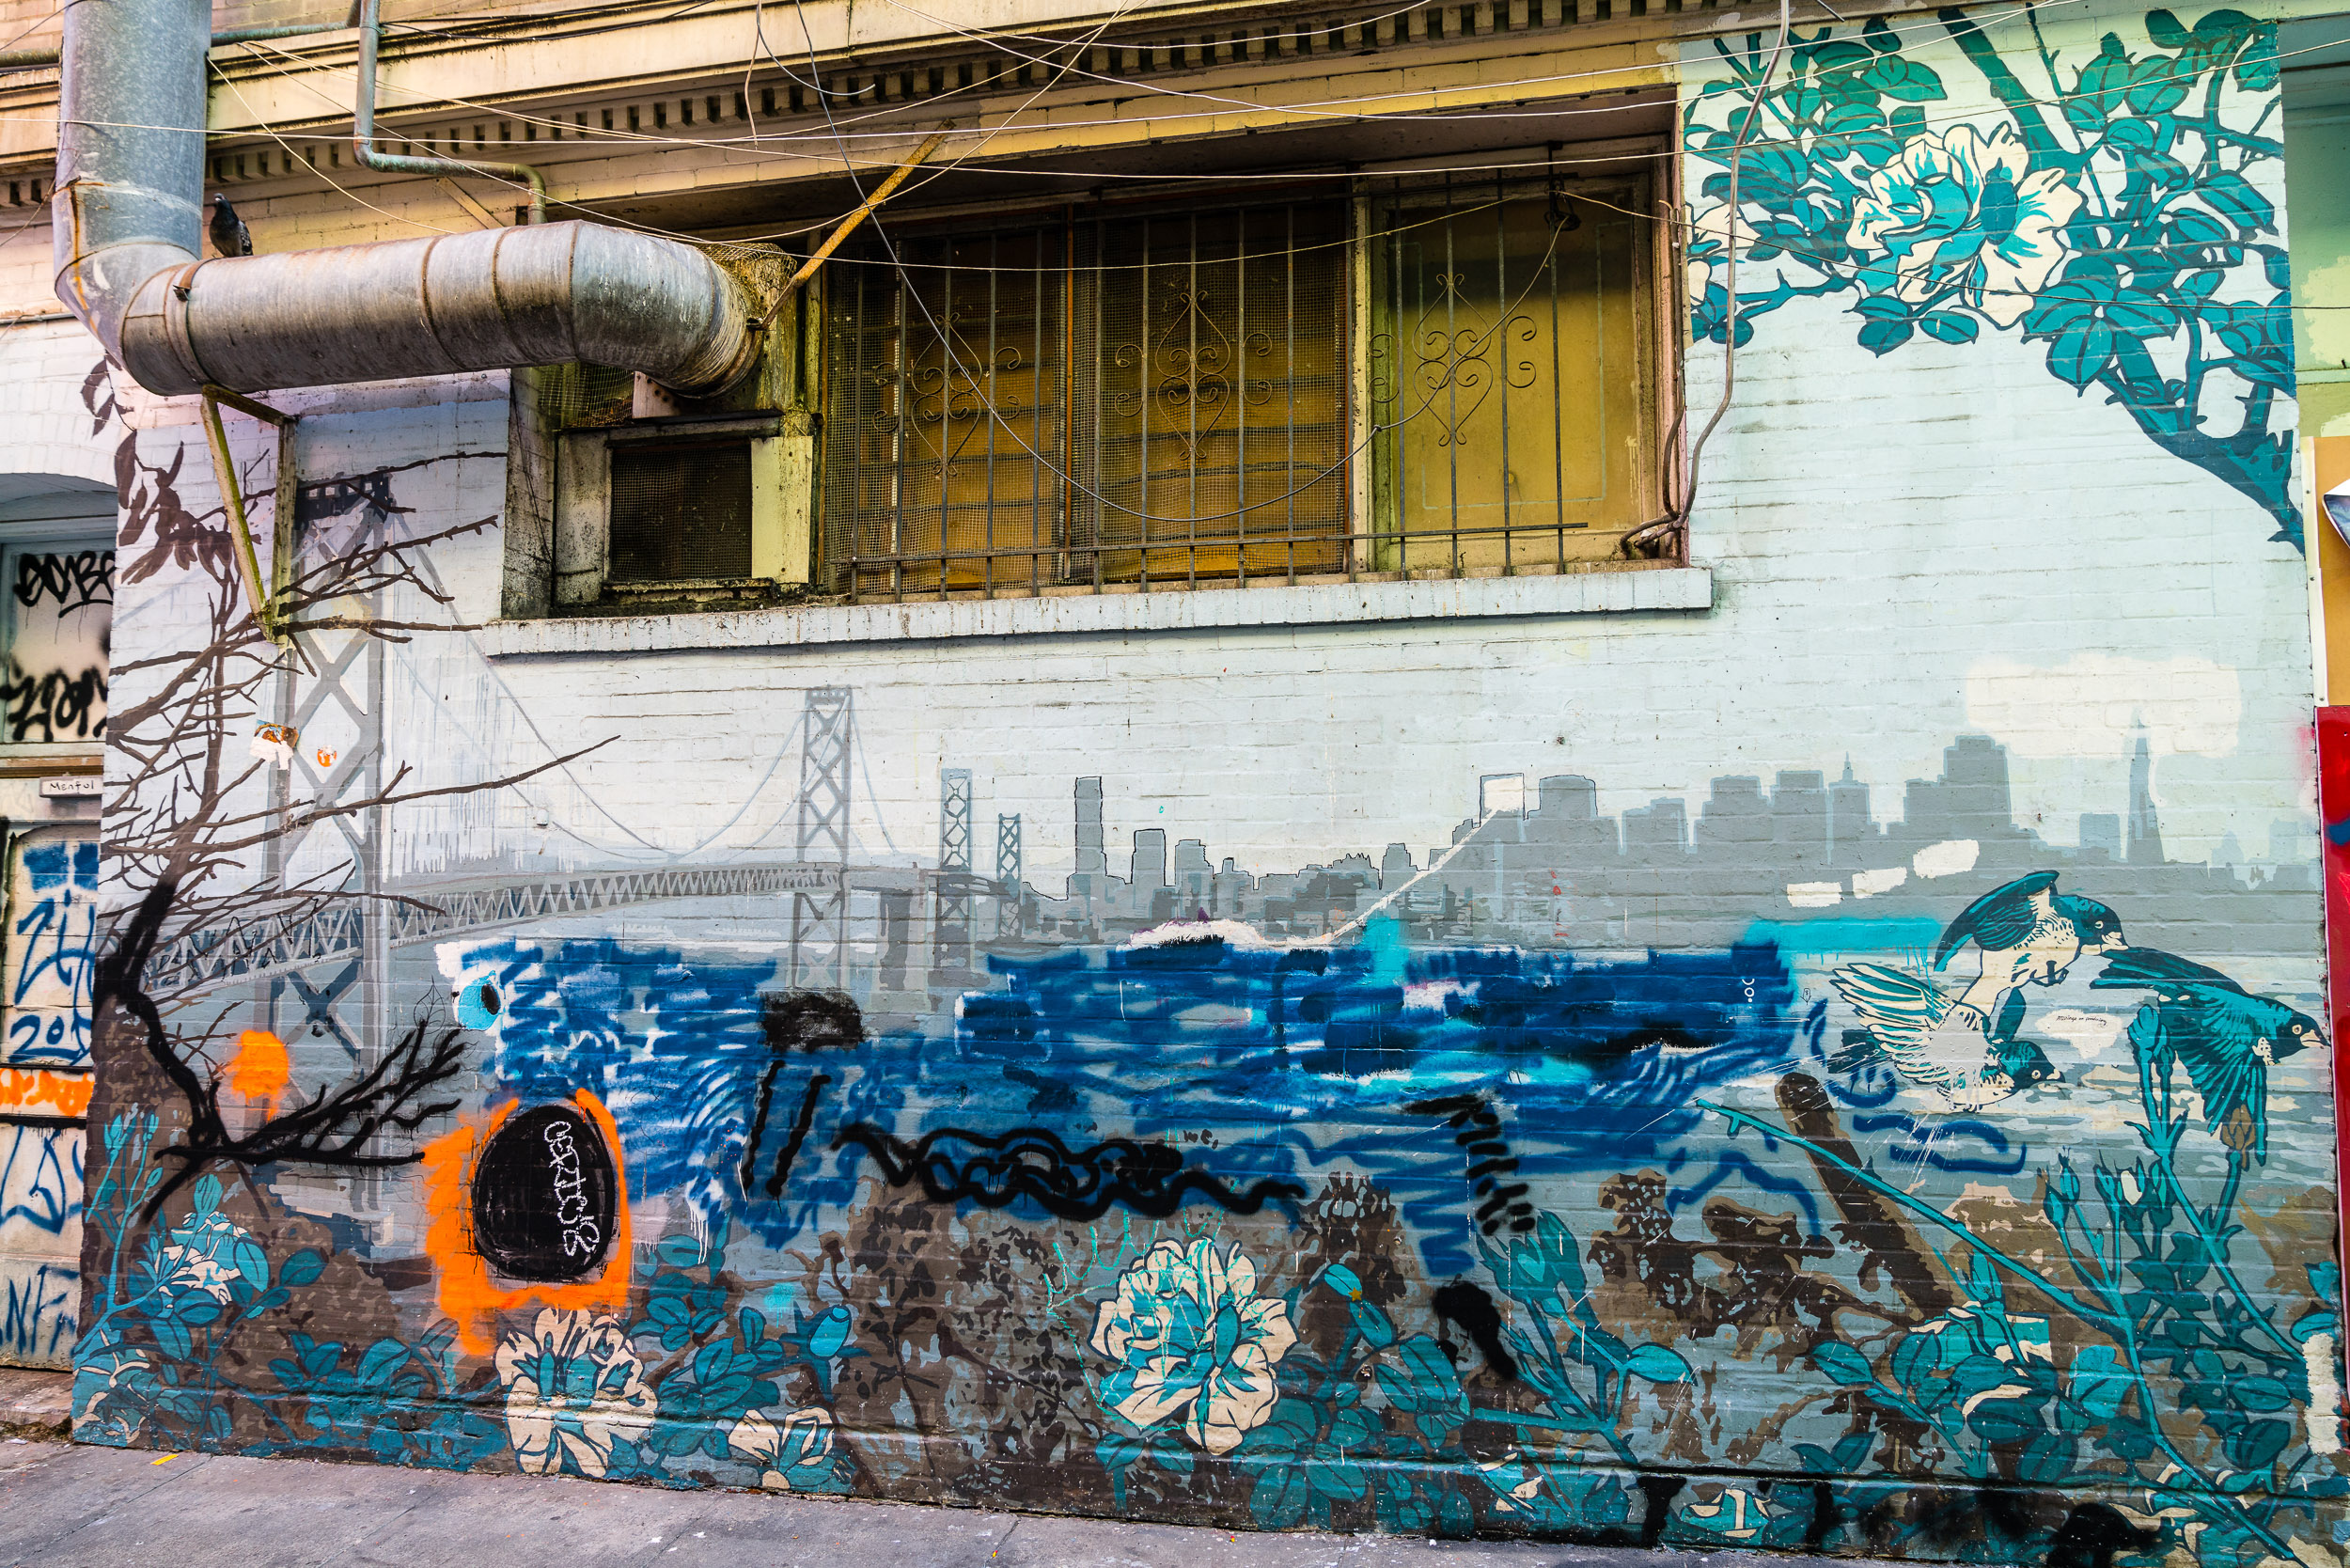 Sad to see this mural getting peppered over by other graffitis. I would've loved to see it in its original form.